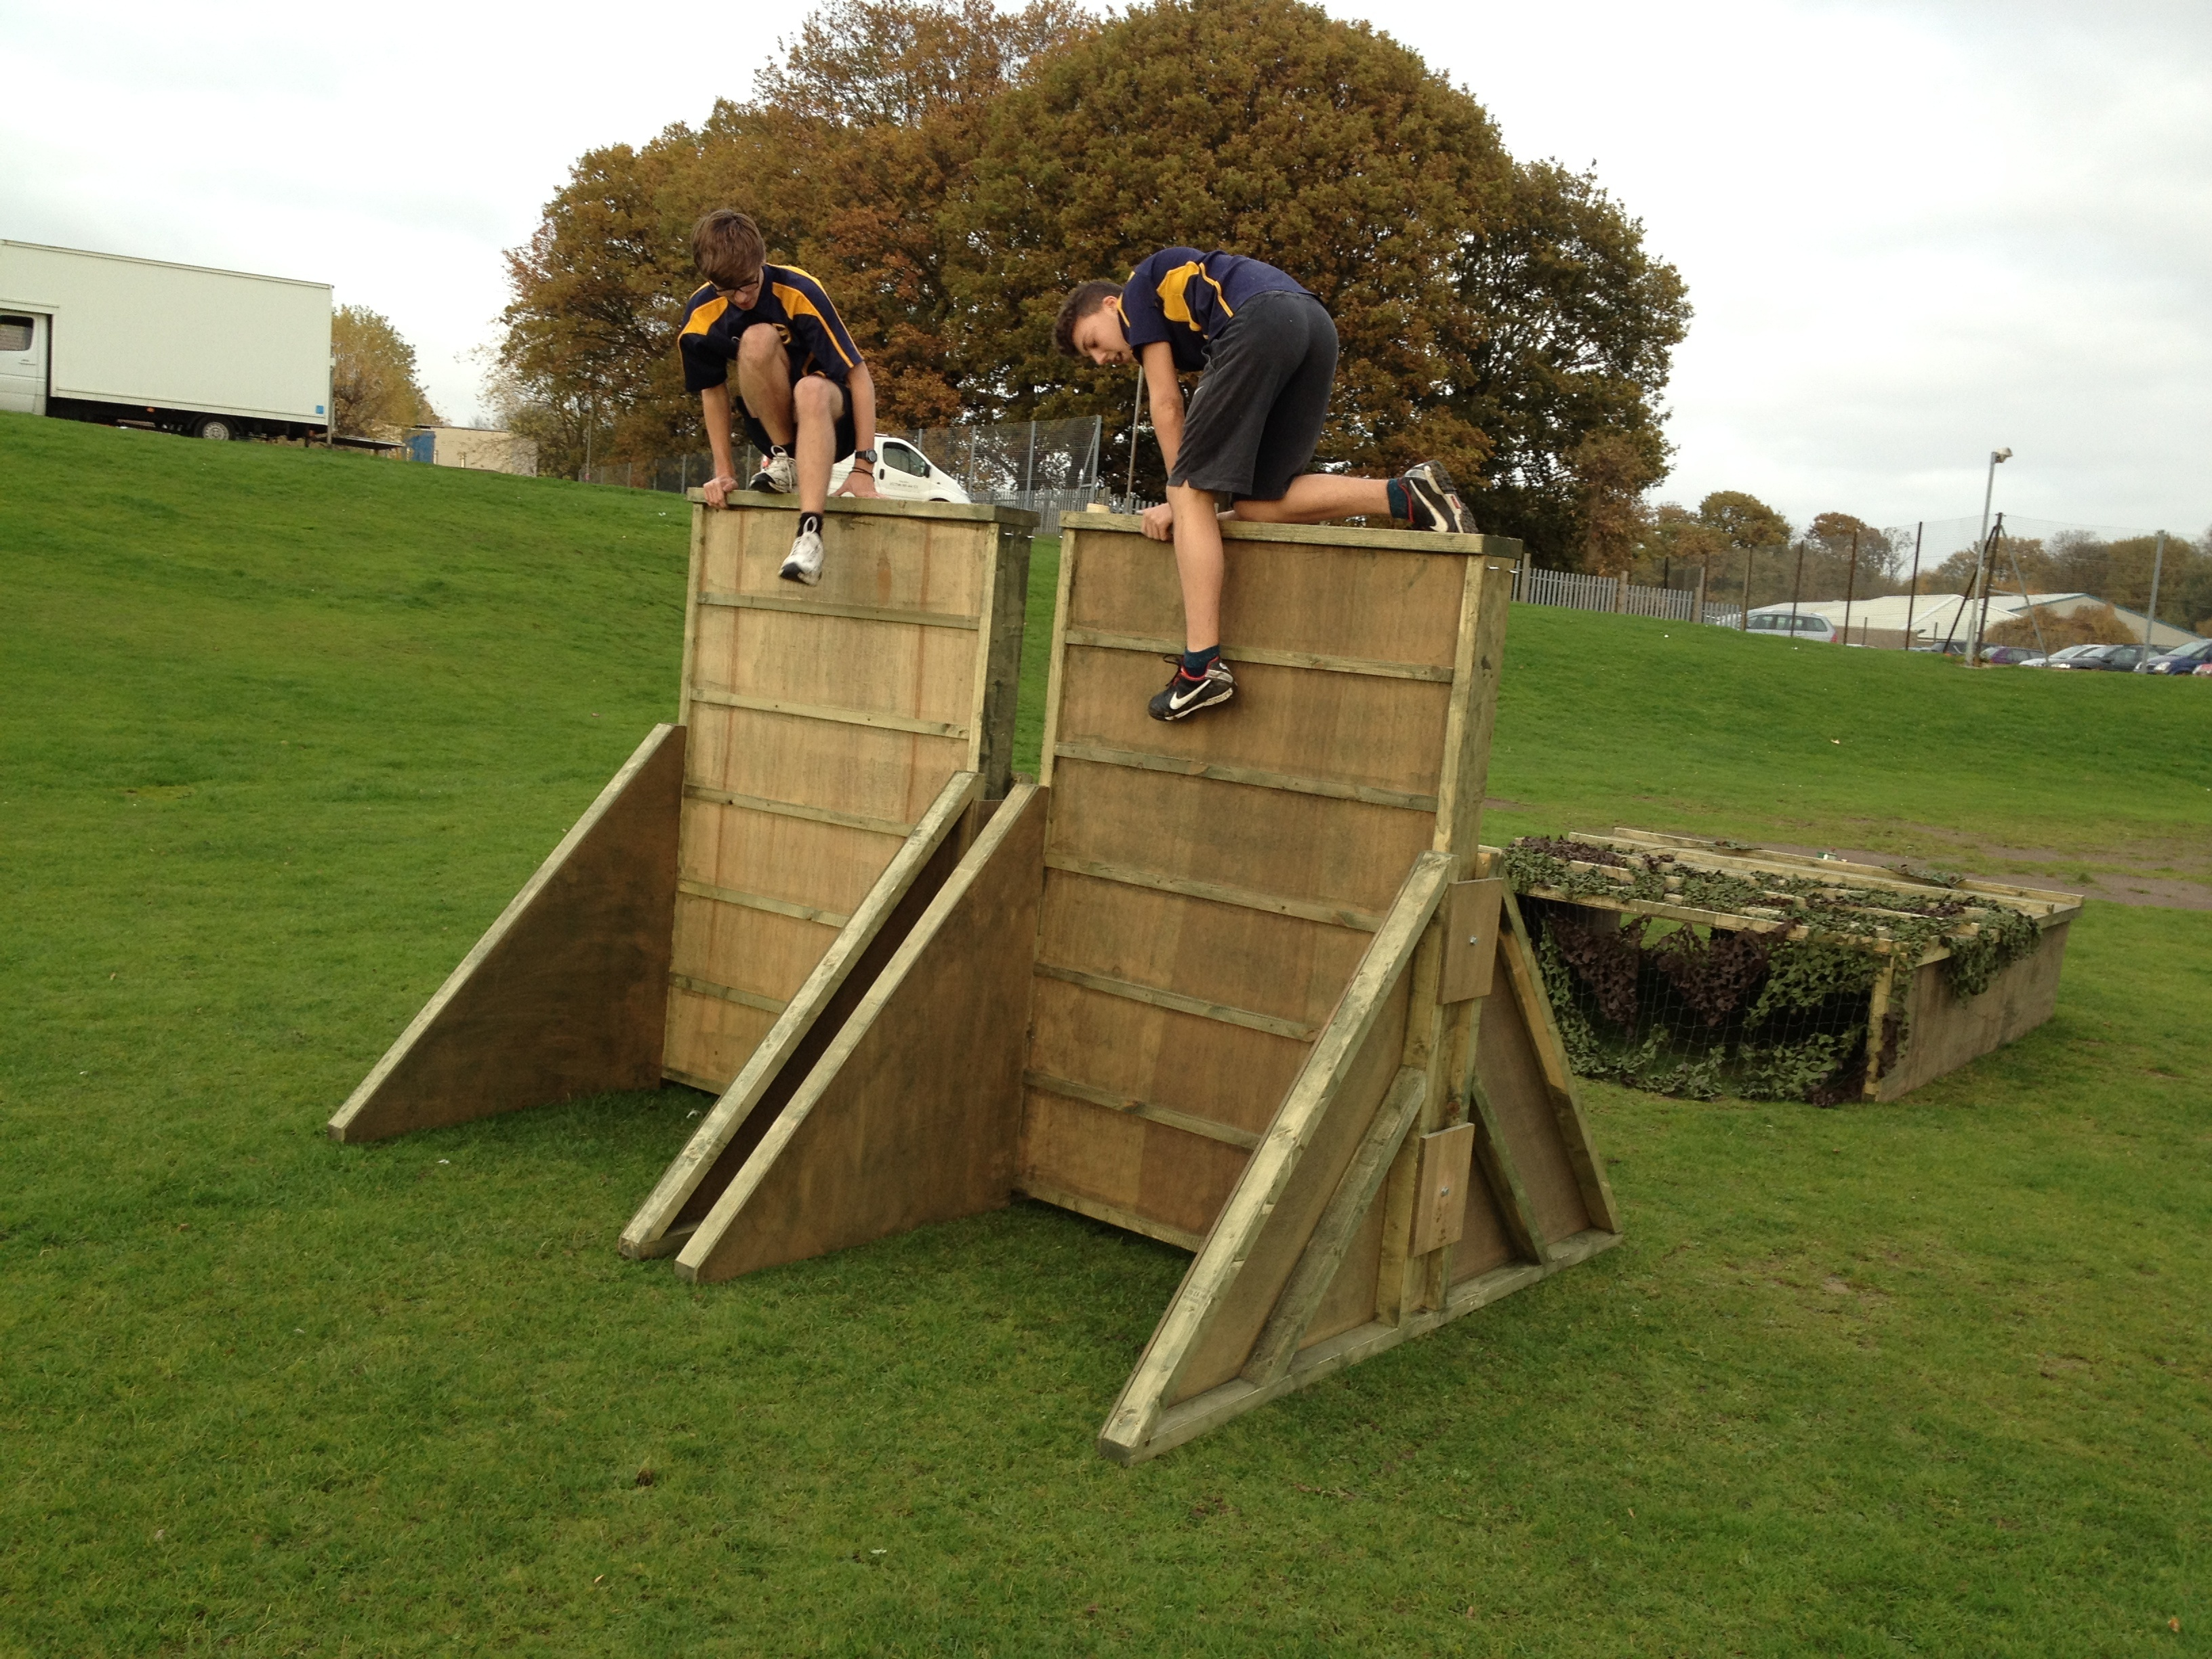 Children Climbing Over Obstacle Course Wall